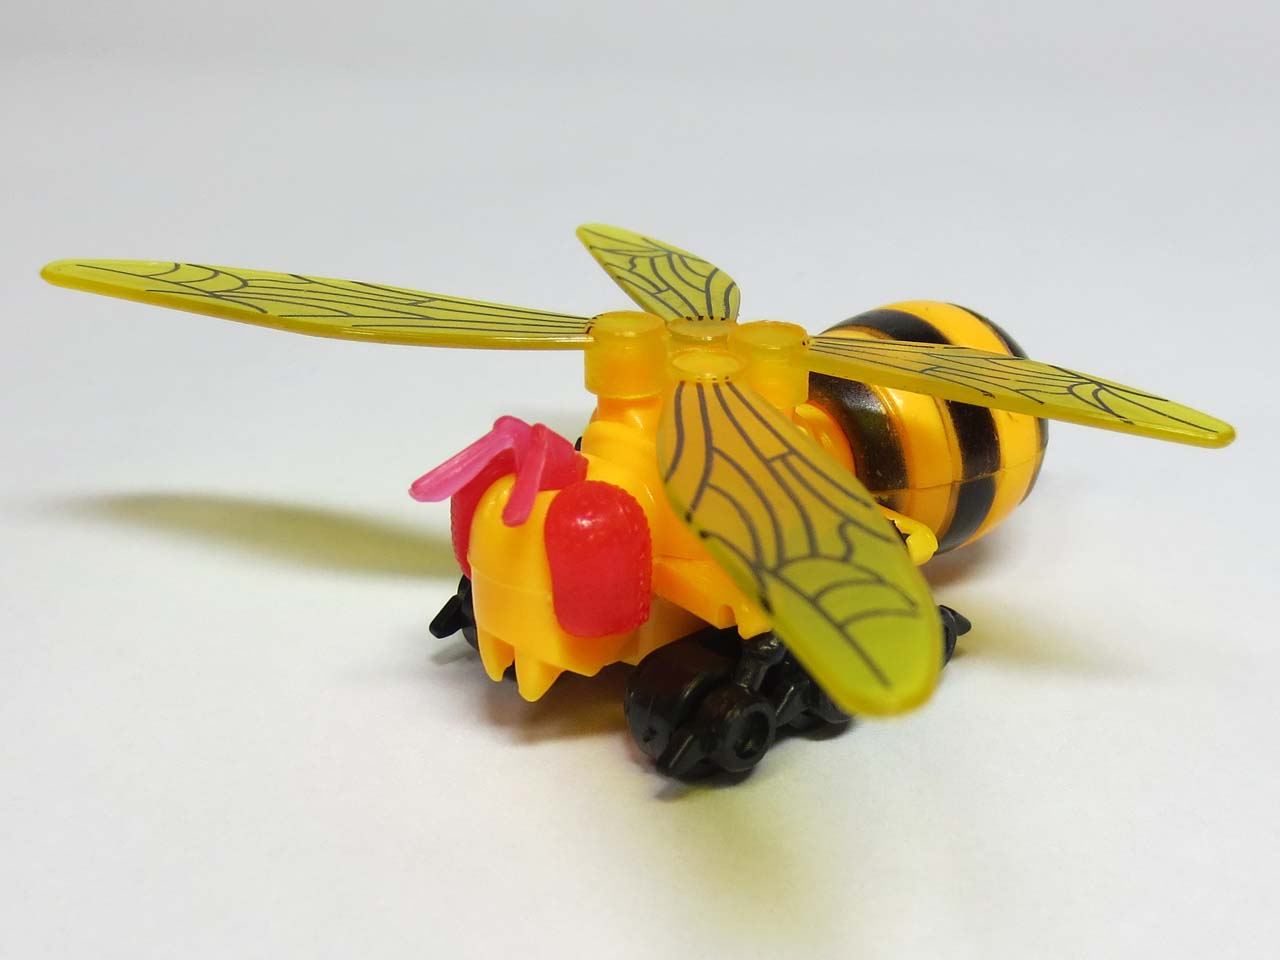 Insect_Combined_robot_10.jpg